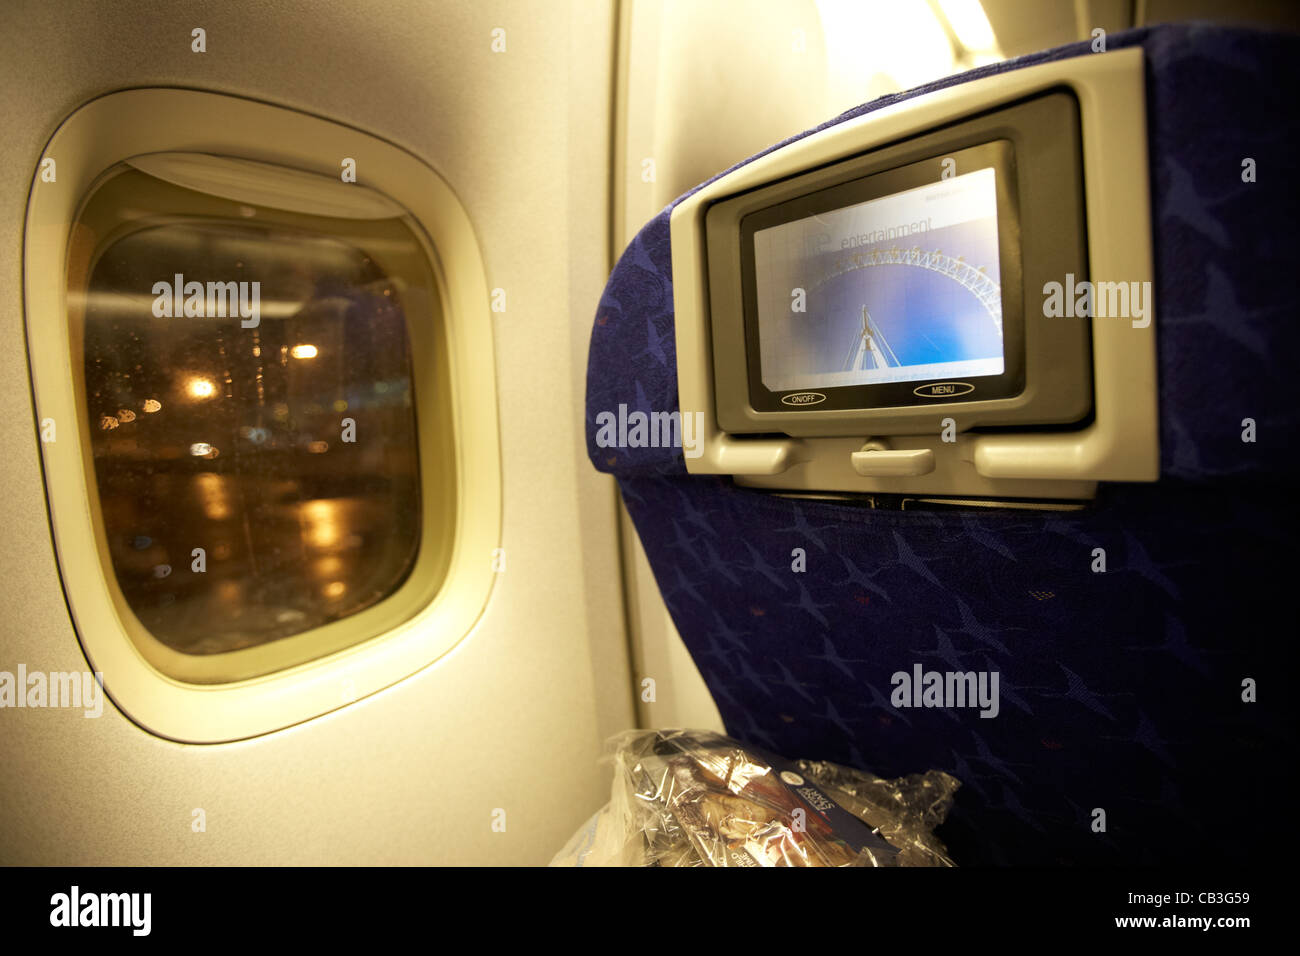 passengers individual entertainment screen on board a 747 passenger aircraft night flight - Stock Image